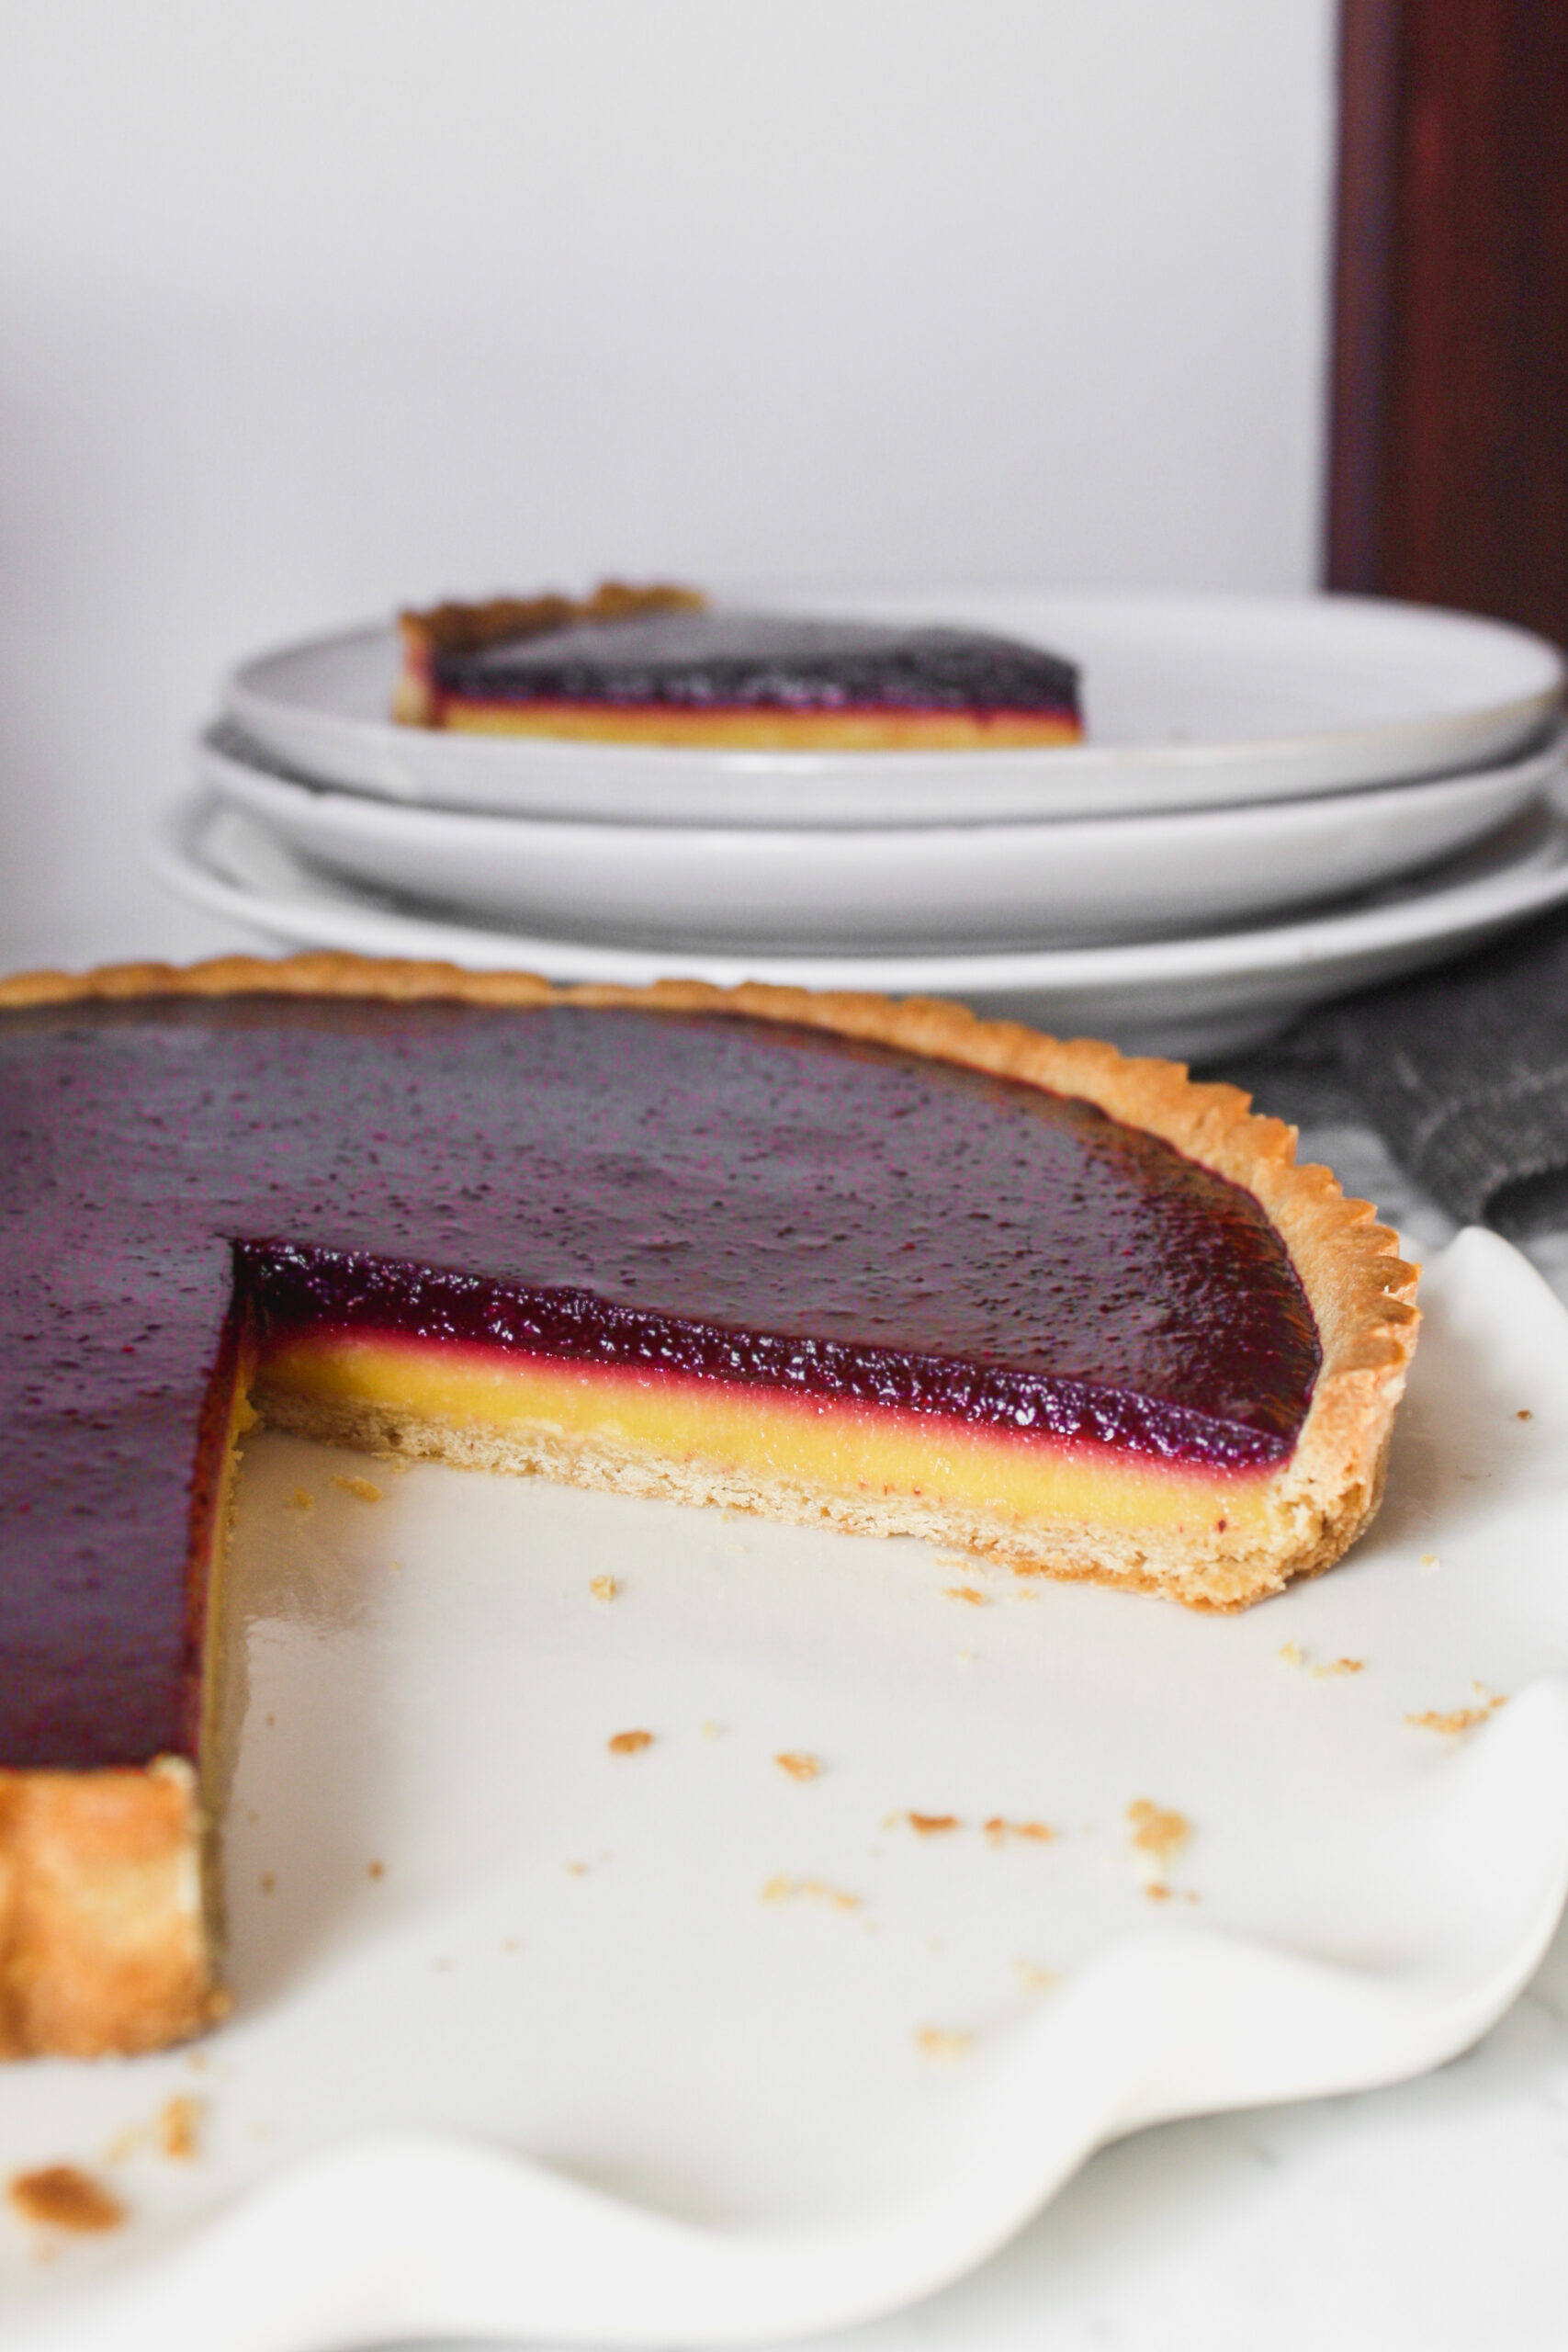 Tart with yellow and purple layers, set on top of a white plate on a marble surface.